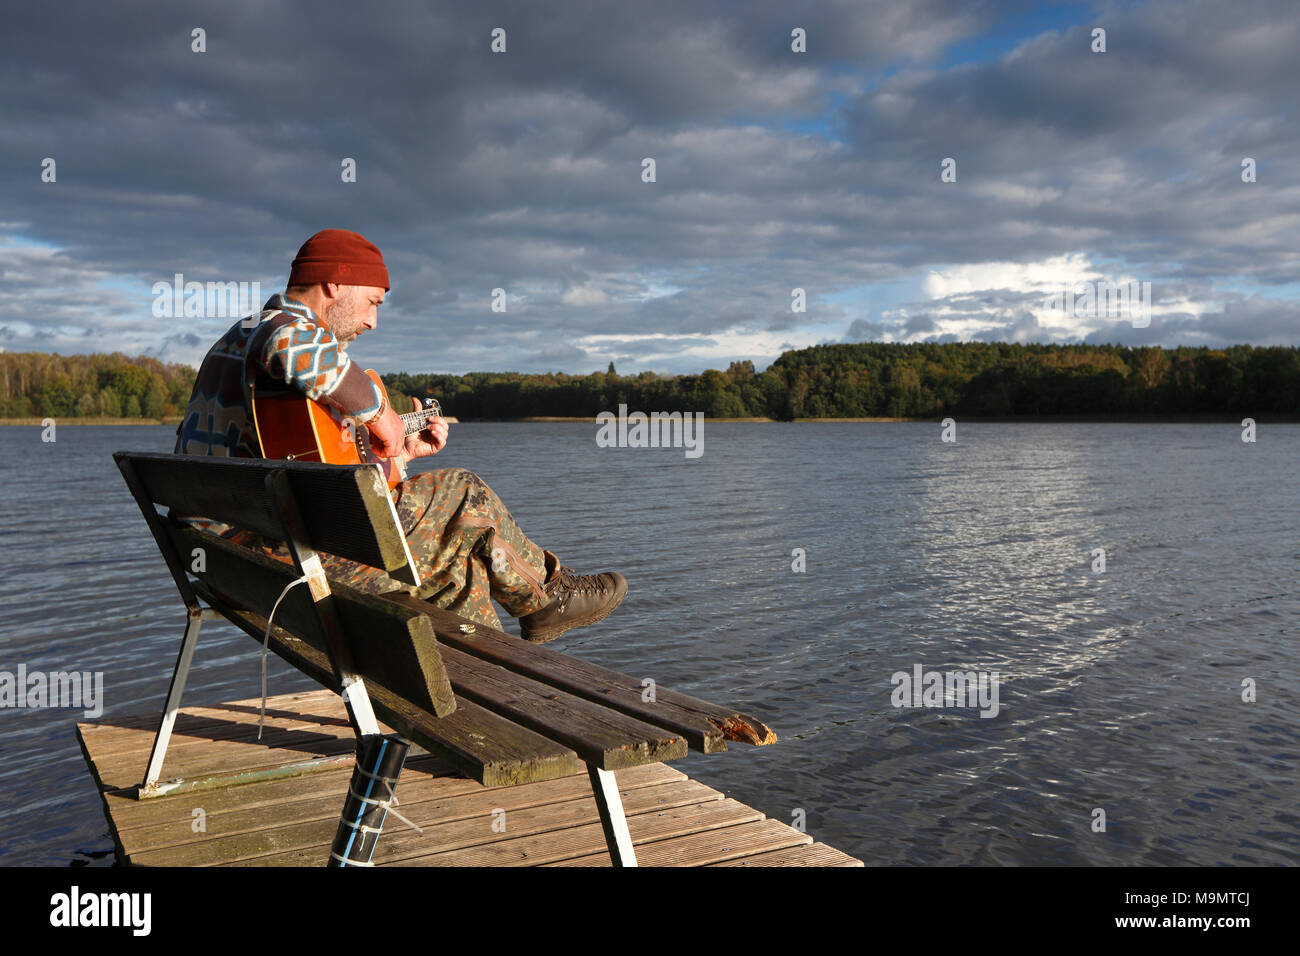 Man plays guitar on a boat landing stage at the lake, Mecklenburg Lake District, Mecklenburg-Western Pomerania, Germany - Stock Image